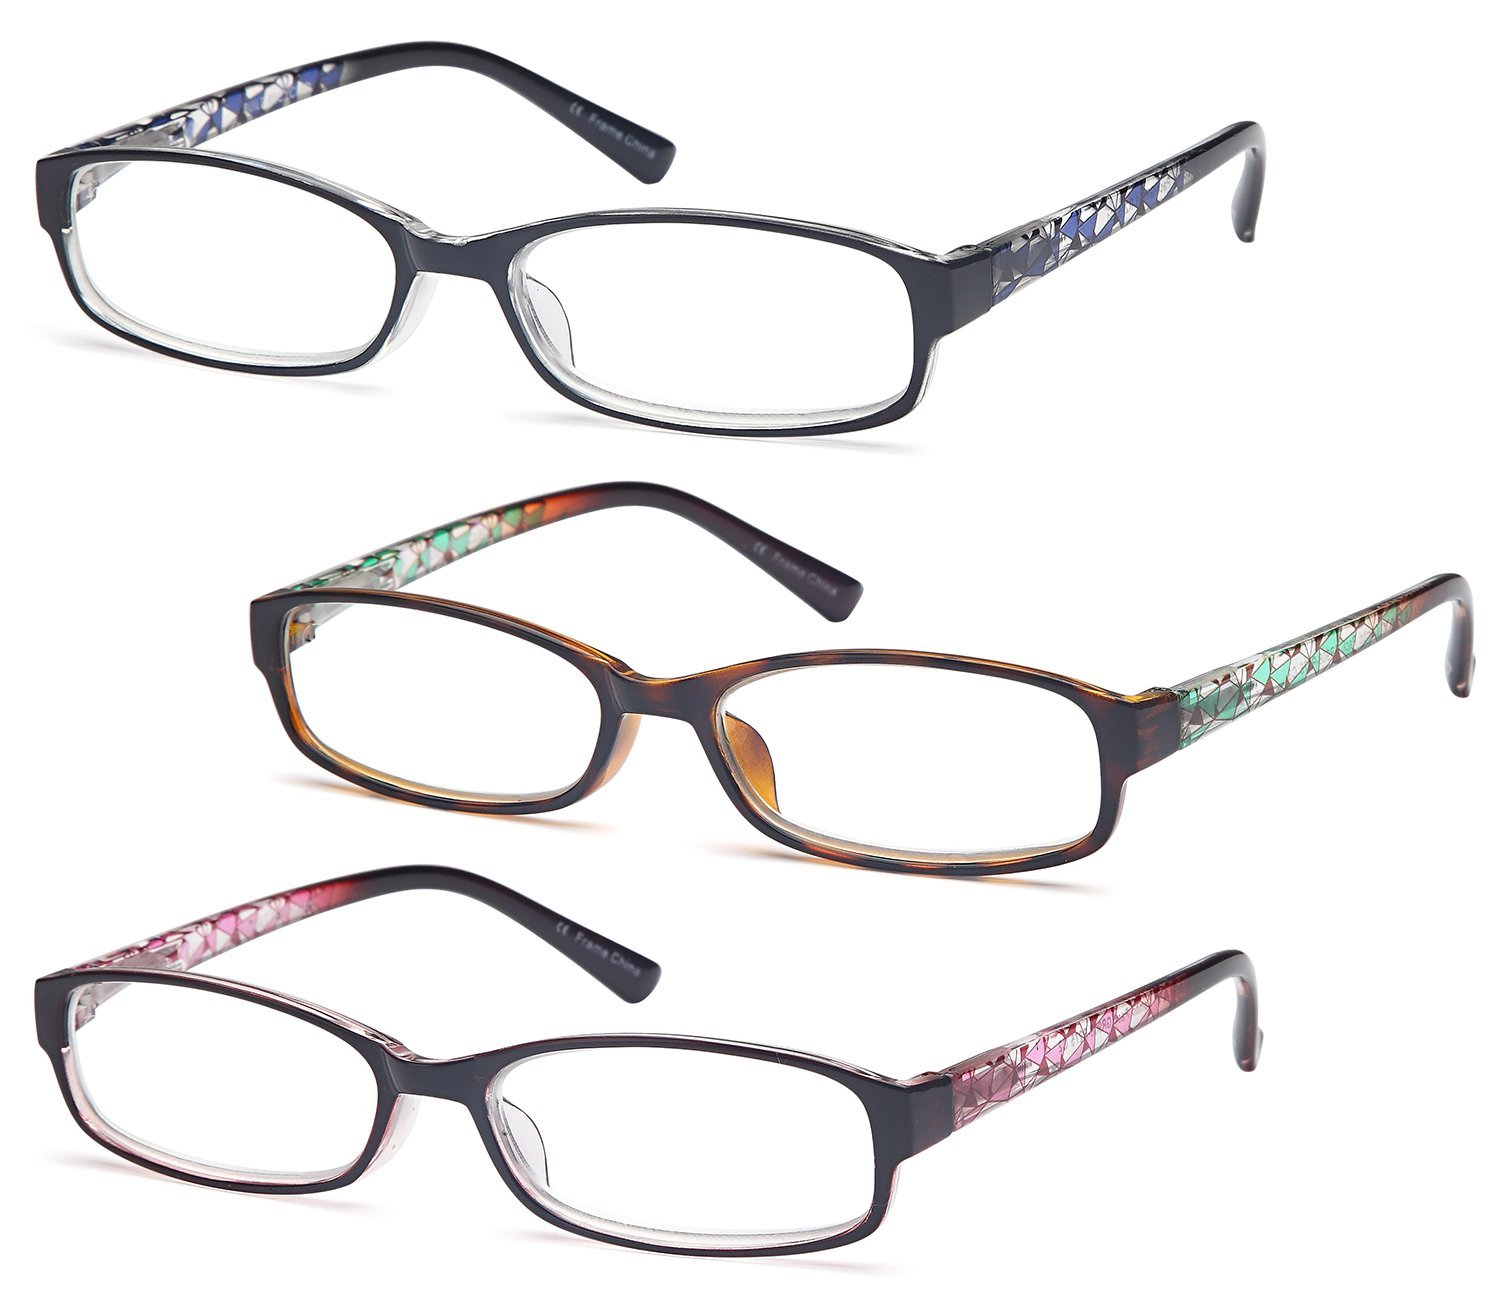 f86311902c GAMMA RAY Readers 3 Pack of Thin and Elegant Womens Reading Glasses with  Beautiful Patterns for Ladies